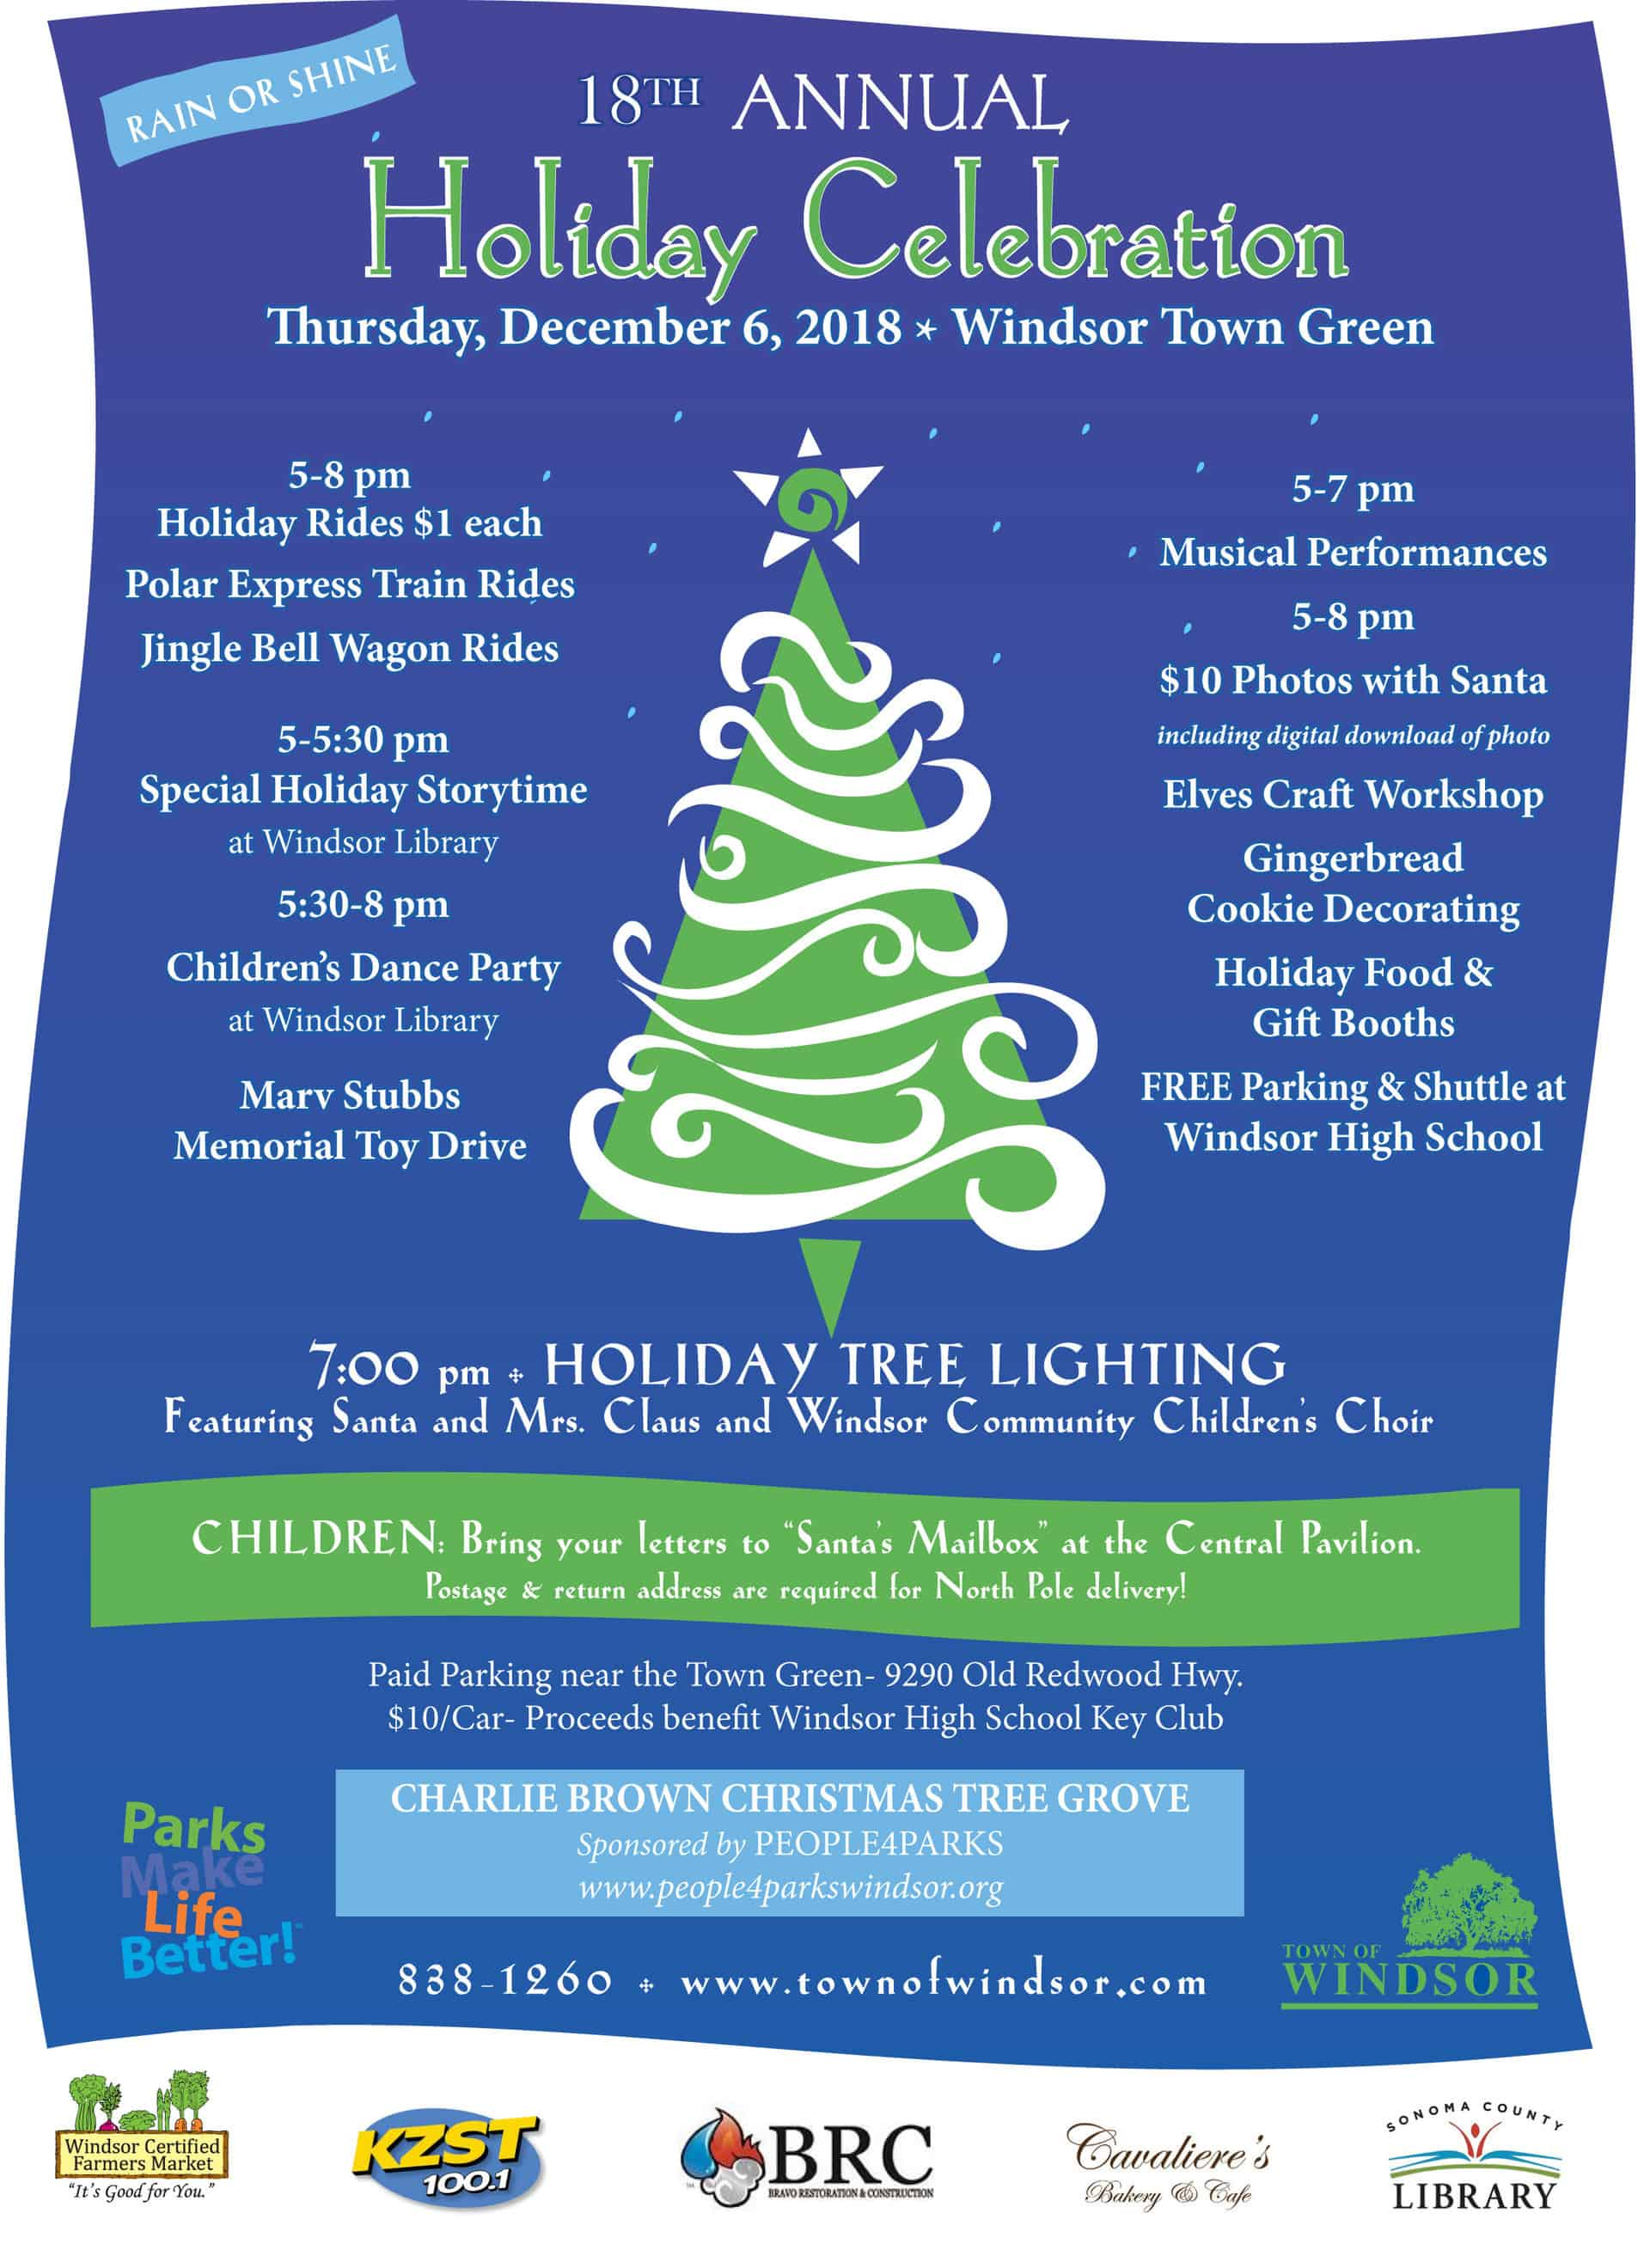 18th Annual Windsor Holiday Celebration